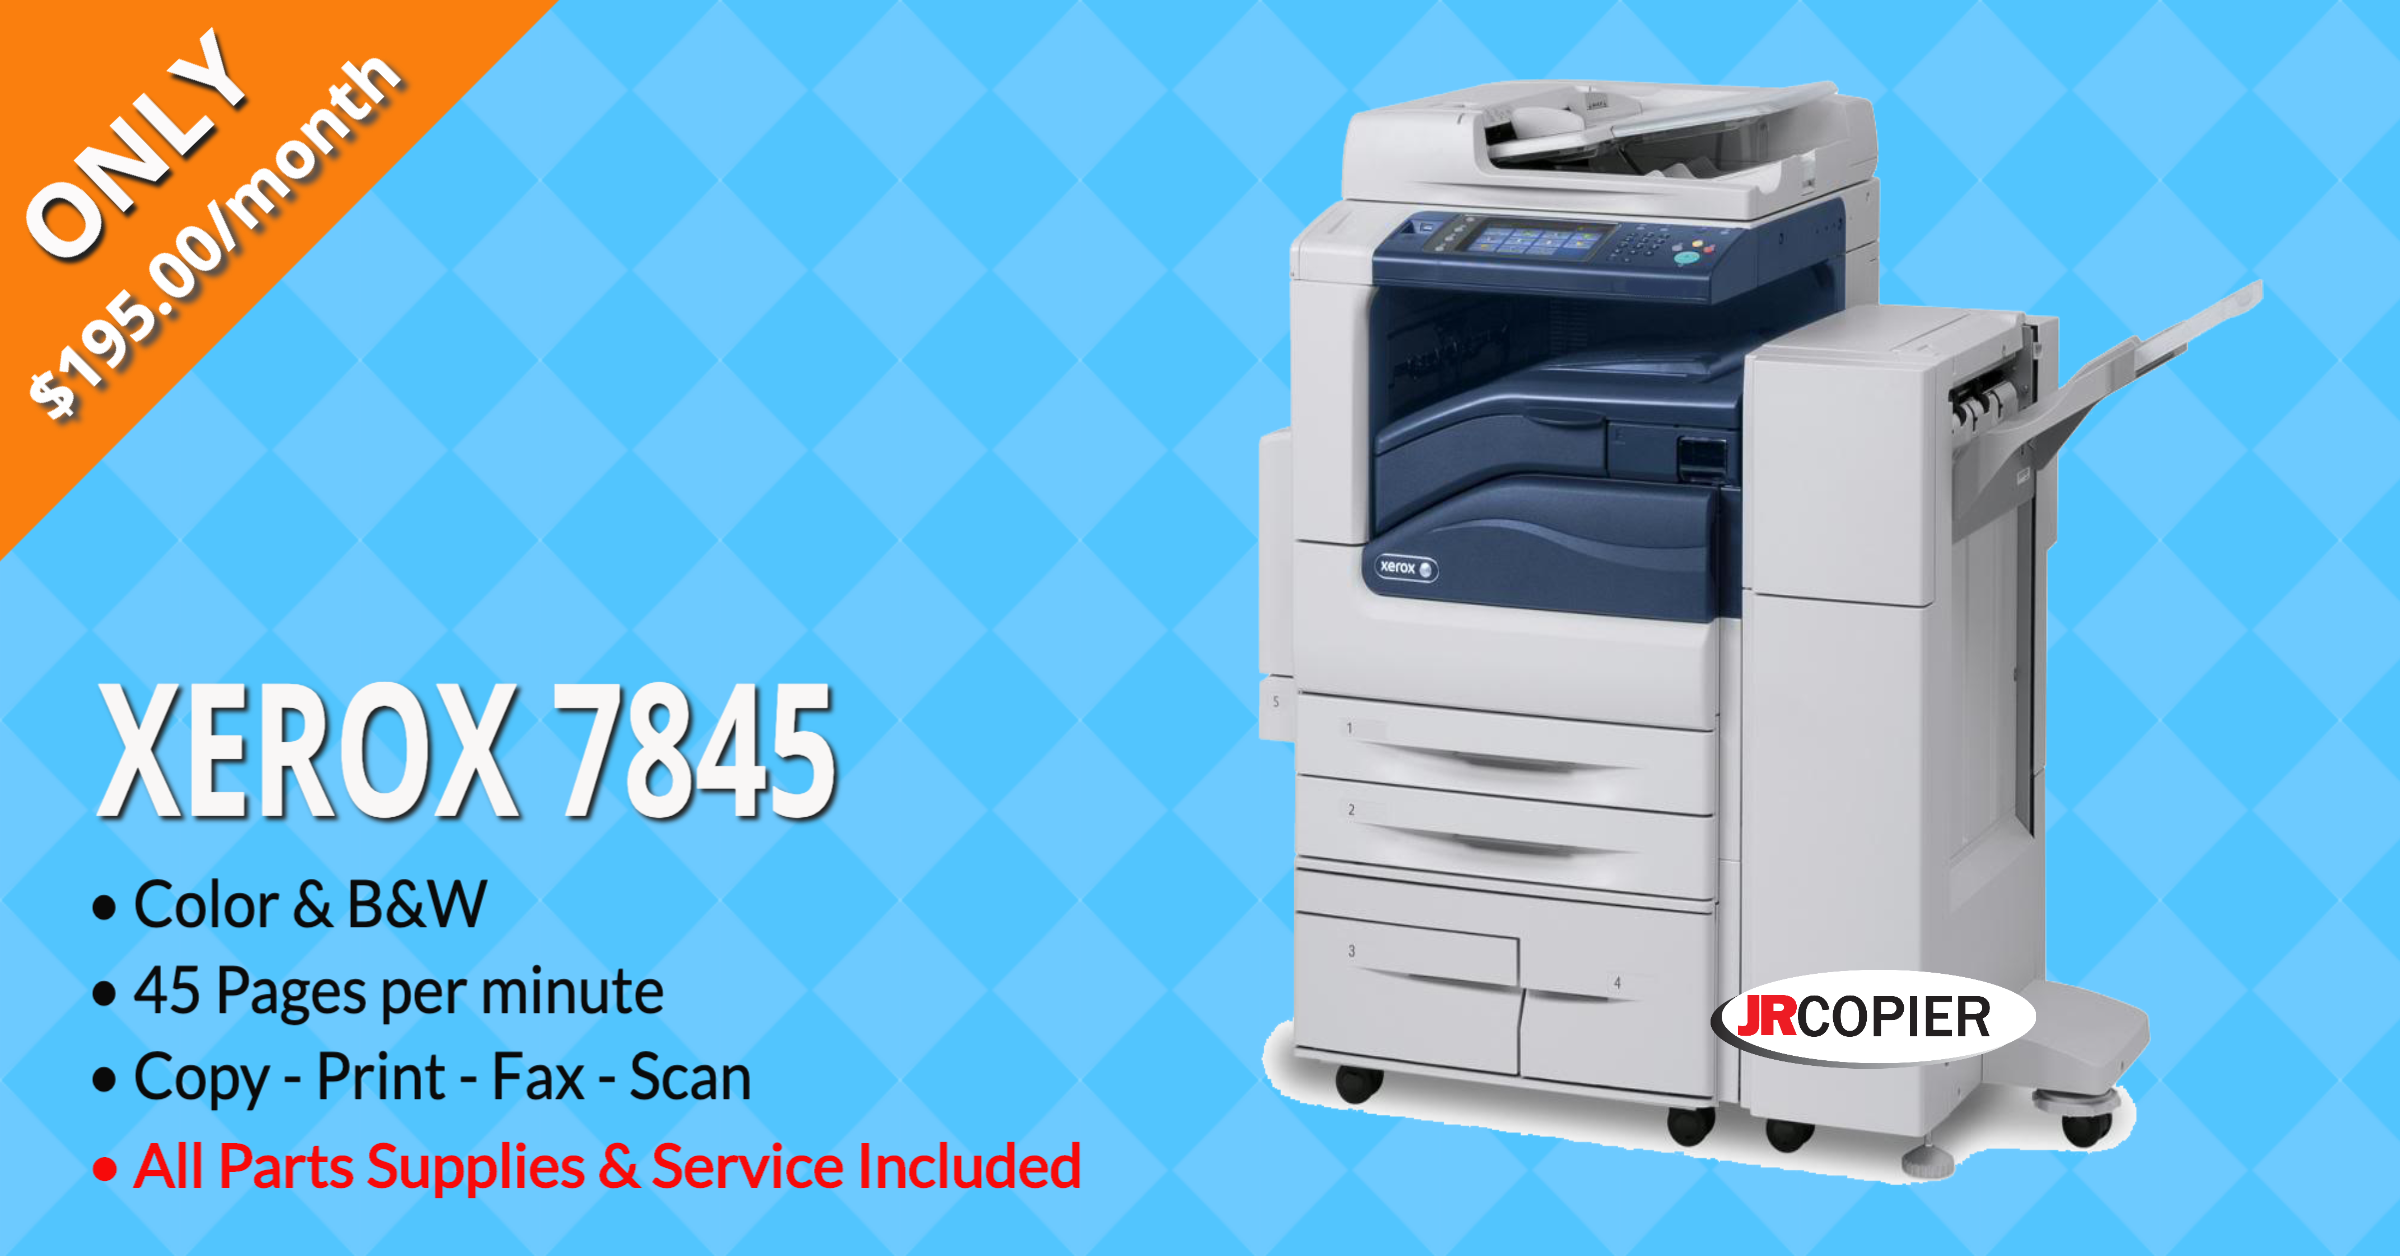 Printer Rental Services 92310, 92311, 92312, 92327